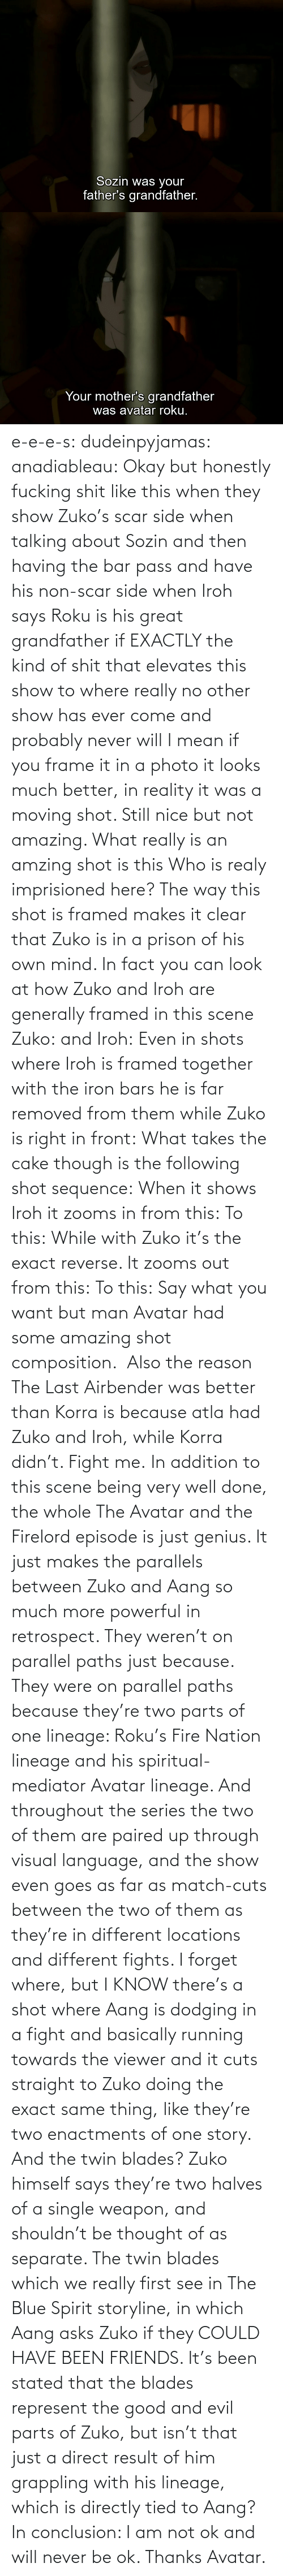 Doing: e-e-e-s: dudeinpyjamas:   anadiableau: Okay but honestly fucking shit like this when they show Zuko's scar side when talking about Sozin and then having the bar pass and have his non-scar side when Iroh says Roku is his great grandfather if EXACTLY the kind of shit that elevates this show to where really no other show has ever come and probably never will I mean if you frame it in a photo it looks much better, in reality it was a moving shot. Still nice but not amazing. What really is an amzing shot is this Who is realy imprisioned here? The way this shot is framed makes it clear that Zuko is in a prison of his own mind. In fact you can look at how Zuko and Iroh are generally framed in this scene Zuko: and Iroh: Even in shots where Iroh is framed together with the iron bars he is far removed from them while Zuko is right in front:  What takes the cake though is the following shot sequence: When it shows Iroh it zooms in from this: To this: While with Zuko it's the exact reverse. It zooms out from this: To this: Say what you want but man Avatar had some amazing shot composition.   Also the reason The Last Airbender was better than Korra is because atla had Zuko and Iroh, while Korra didn't. Fight me.    In addition to this scene being very well done, the whole The Avatar and the Firelord episode is just genius.  It just makes the parallels between Zuko and Aang so much more powerful in retrospect.  They weren't on parallel paths just because.  They were on parallel paths because they're two parts of one lineage: Roku's Fire Nation lineage and his spiritual-mediator Avatar lineage.  And throughout the series the two of them are paired up through visual language, and the show even goes as far as match-cuts between the two of them as they're in different locations and different fights.  I forget where, but I KNOW there's a shot where Aang is dodging in a fight and basically running towards the viewer and it cuts straight to Zuko doing the exact same thing, like they're two enactments of one story.   And the twin blades?  Zuko himself says they're two halves of a single weapon, and shouldn't be thought of as separate.  The twin blades which we really first see in The Blue Spirit storyline, in which Aang asks Zuko if they COULD HAVE BEEN FRIENDS.  It's been stated that the blades represent the good and evil parts of Zuko, but isn't that just a direct result of him grappling with his lineage, which is directly tied to Aang? In conclusion: I am not ok and will never be ok.  Thanks Avatar.